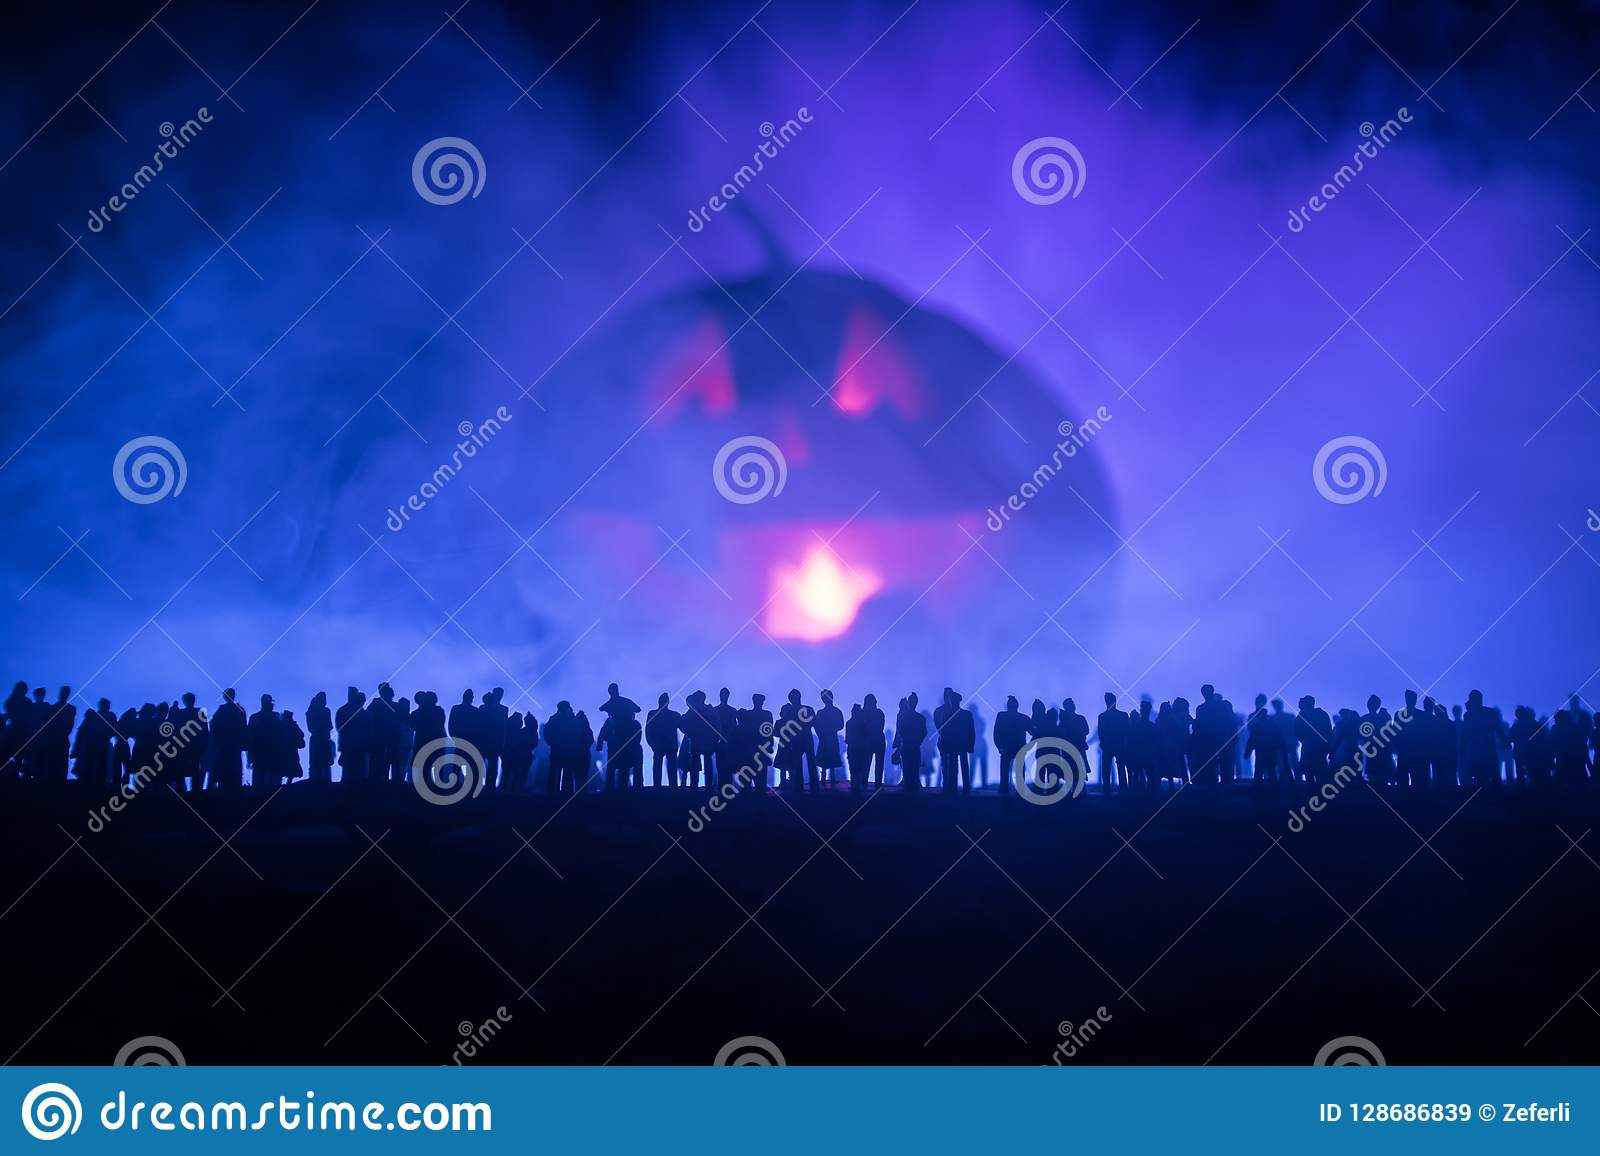 Blurred silhouette of giant monster prepare attack crowd during night. Selective focus.